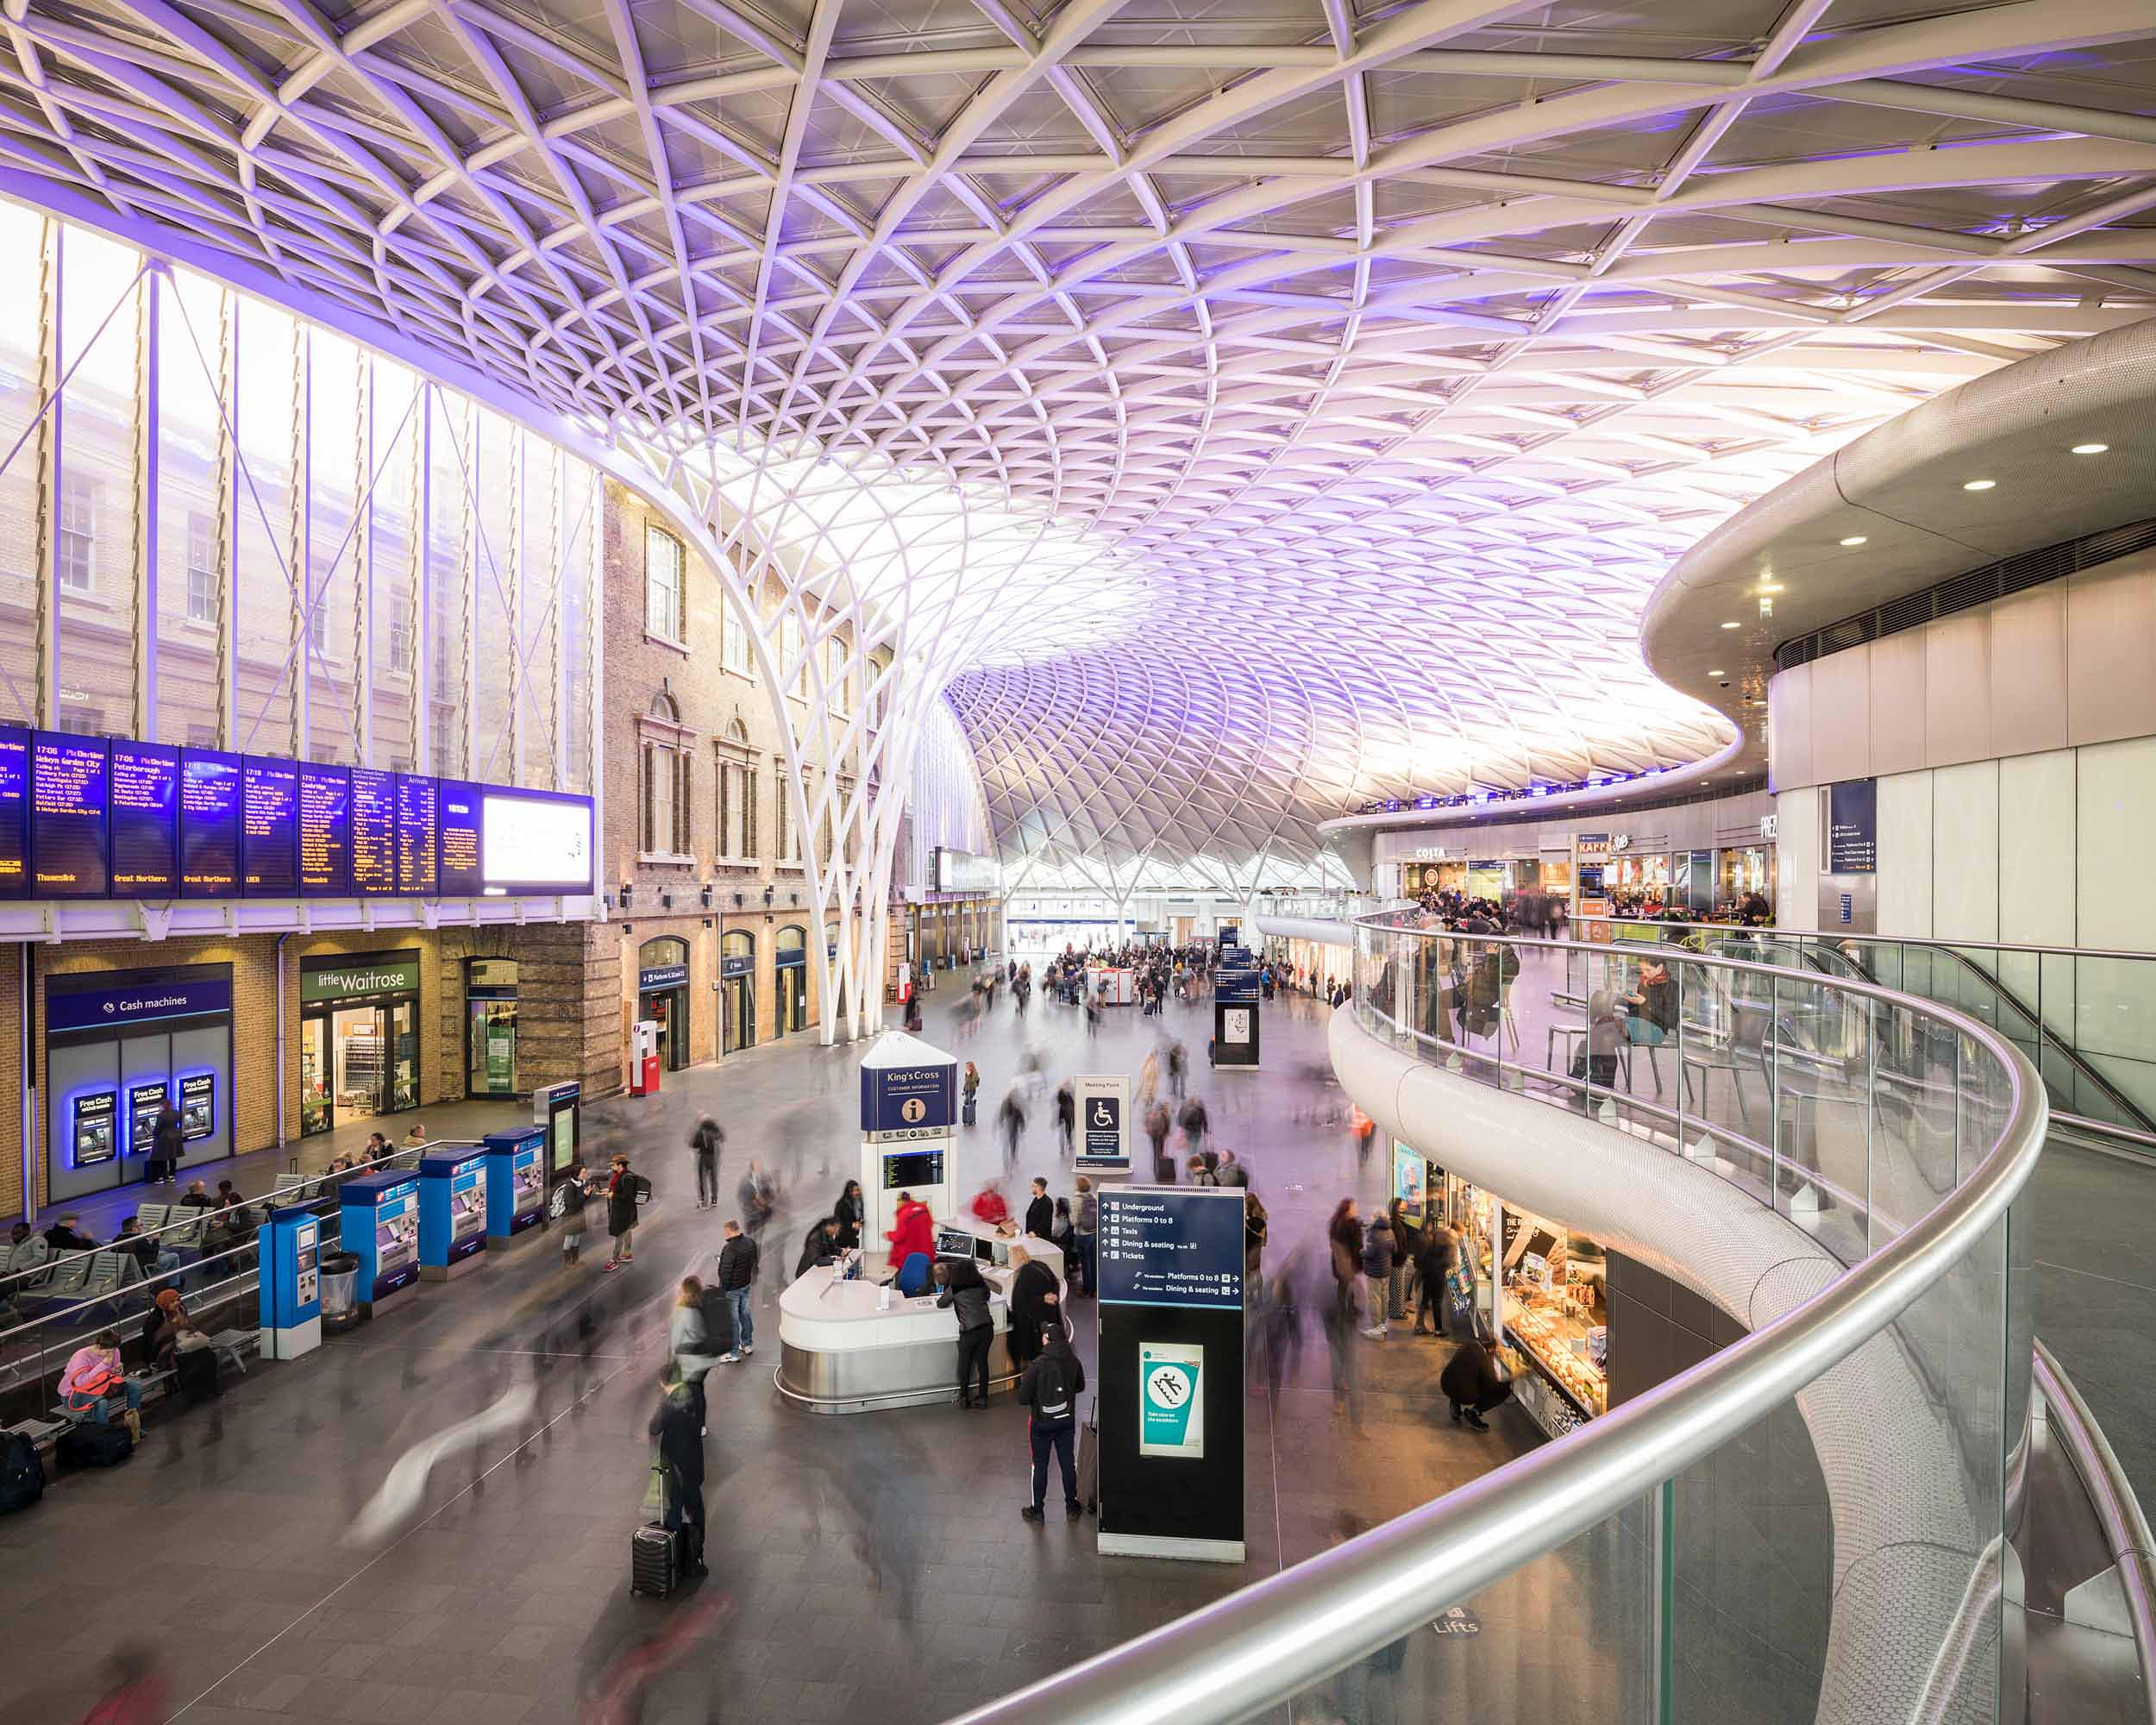 kings-cross-train-station-london-modern-architecture-interior